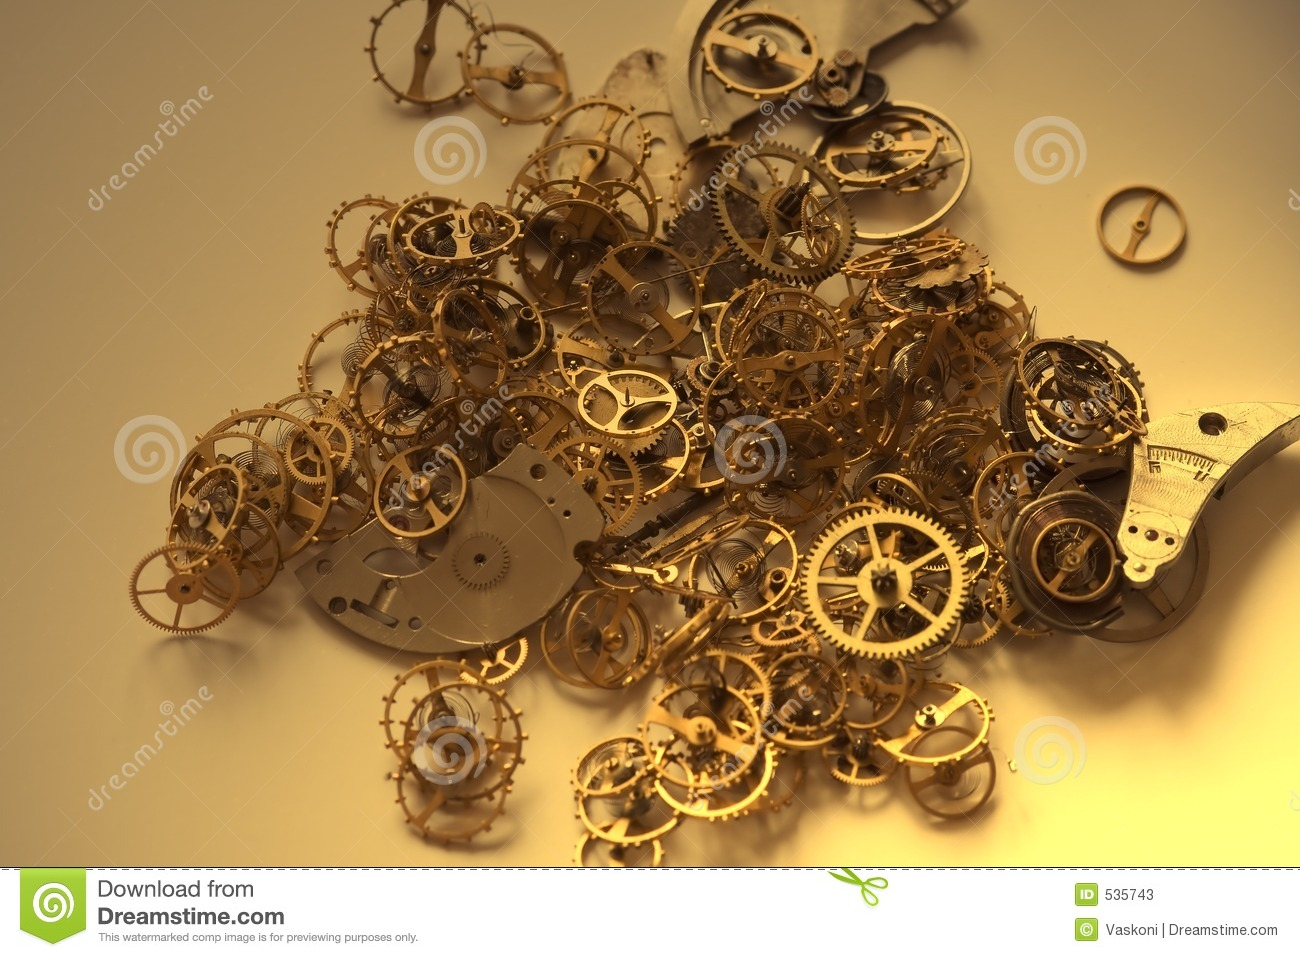 http://thumbs.dreamstime.com/z/old-clock-s-parts-i-535743.jpg